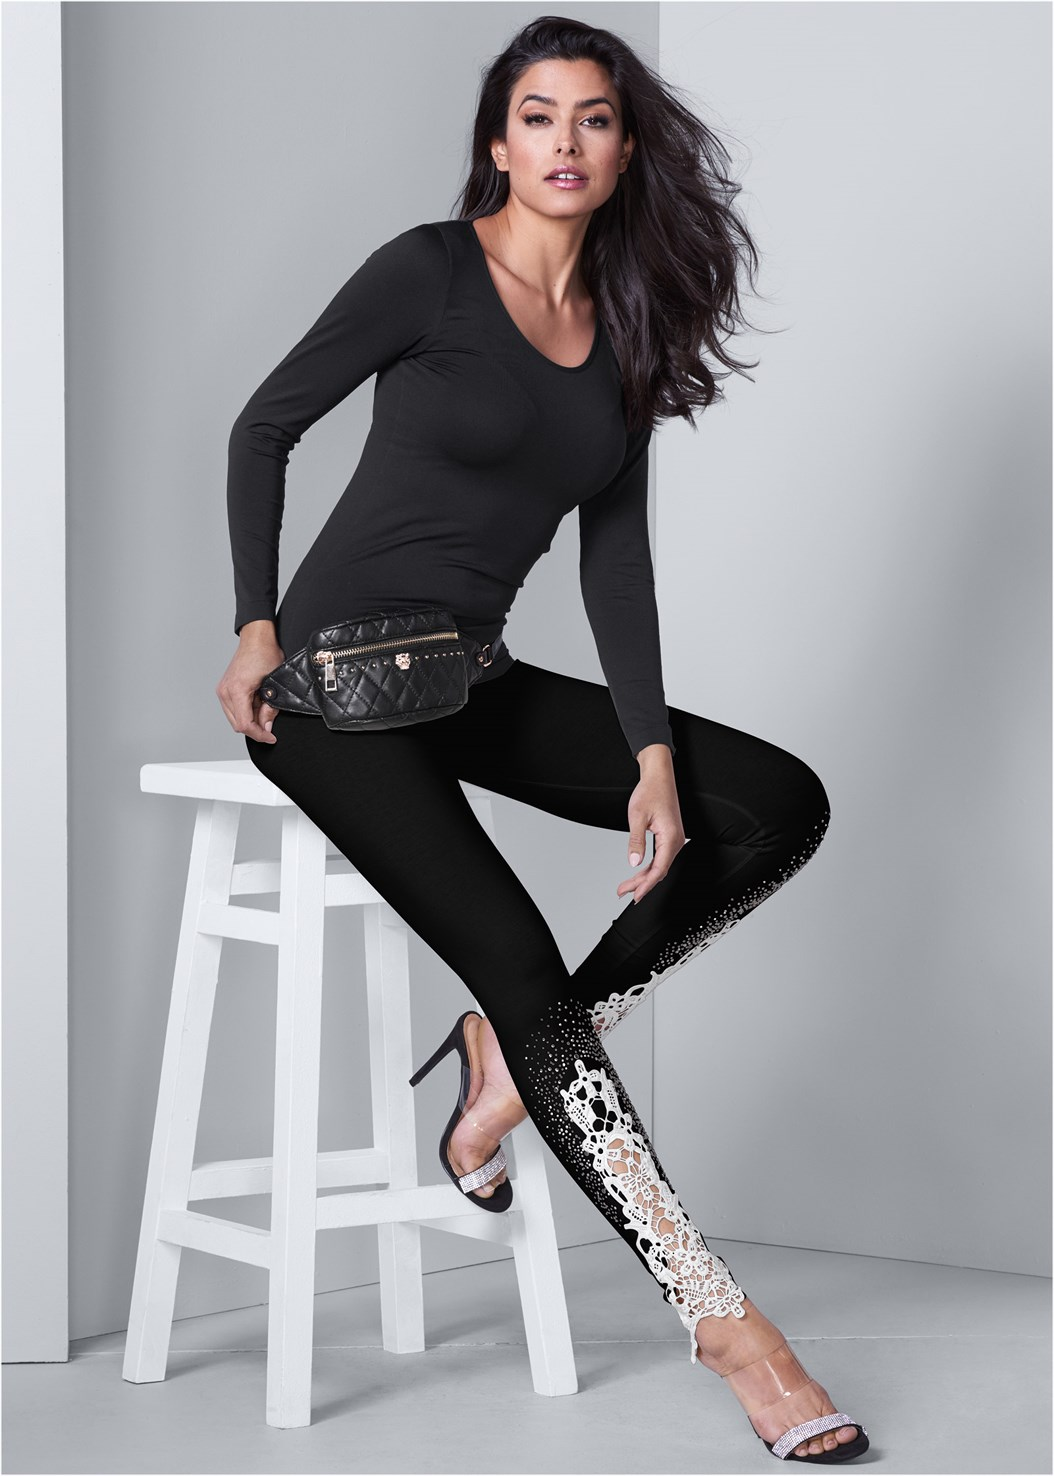 Lace Detail Leggings,Long And Lean Half Sleeve V-Neck Tee,Faux Leather Lace Up Jacket,Embellished Waist Belt,Quilted Belt Bag